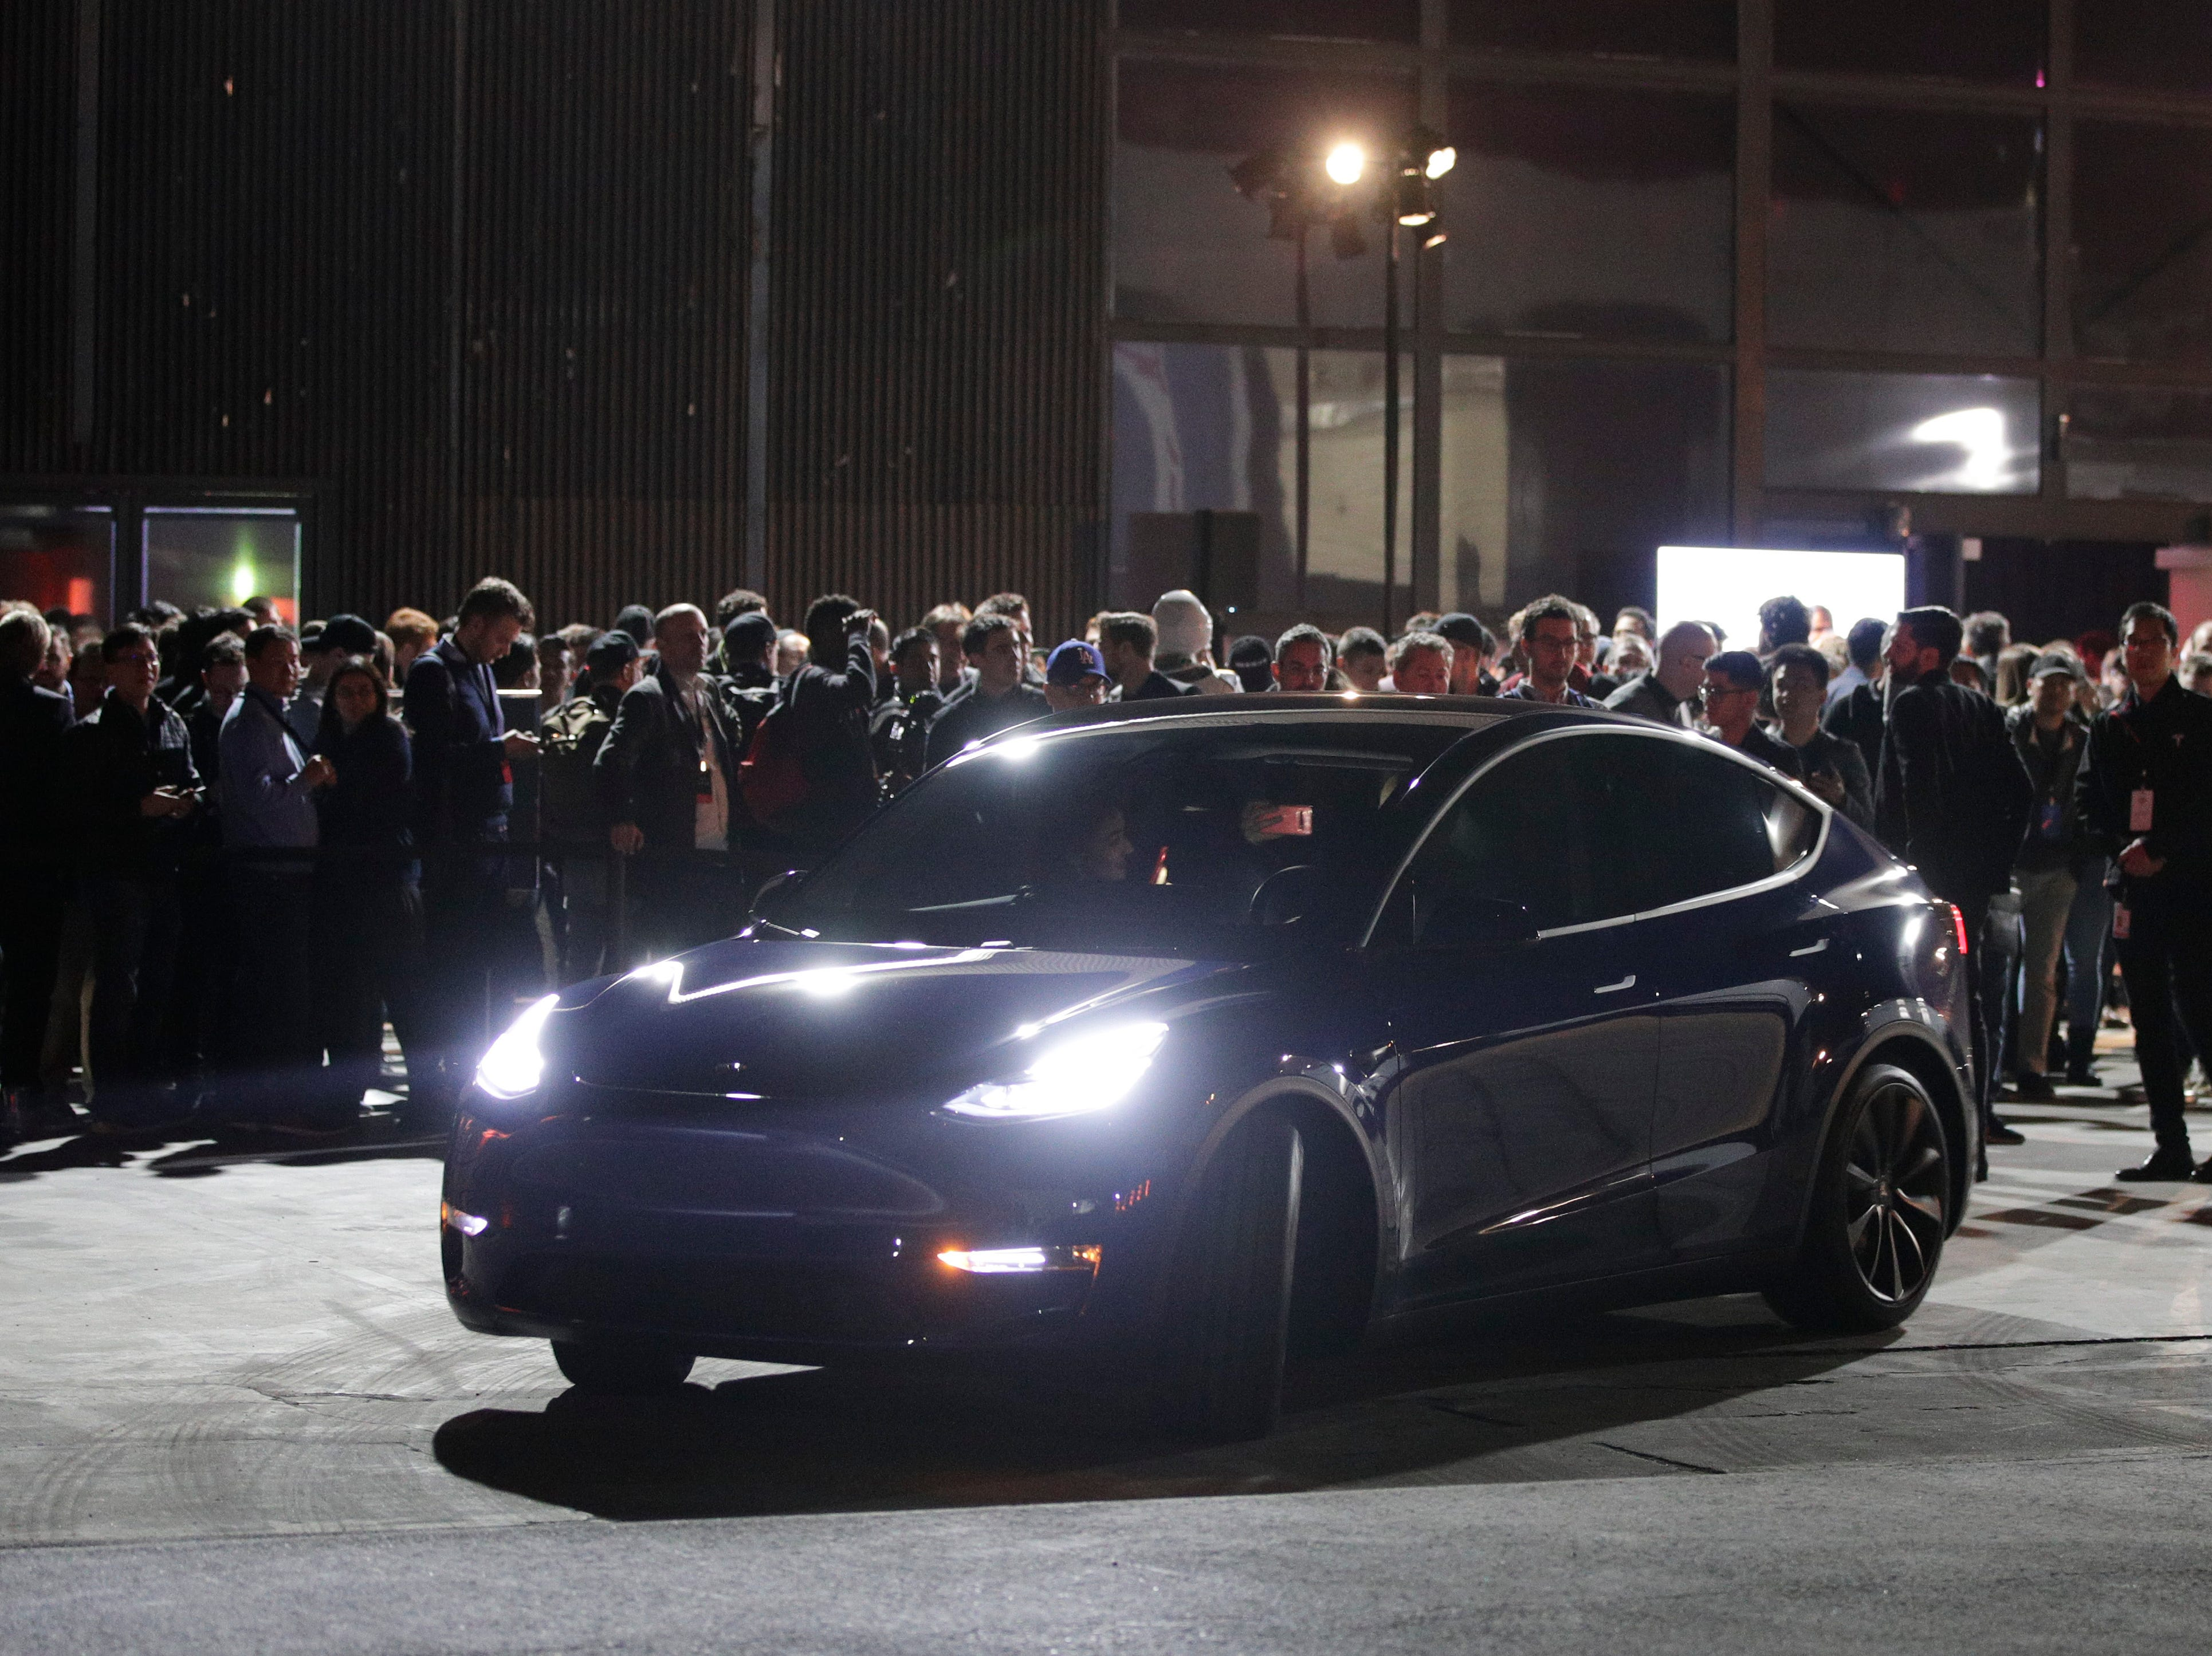 People wait outside Tesla's design studio for a test drive of the Model Y, Thursday, March 14, 2019, in Hawthorne, Calif. The Model Y may be Tesla's most important product yet as it attempts to expand into the mainstream and generate enough cash to repay massive debts that threaten to topple the Palo Alto, Calif., company. (AP Photo/Jae C. Hong)